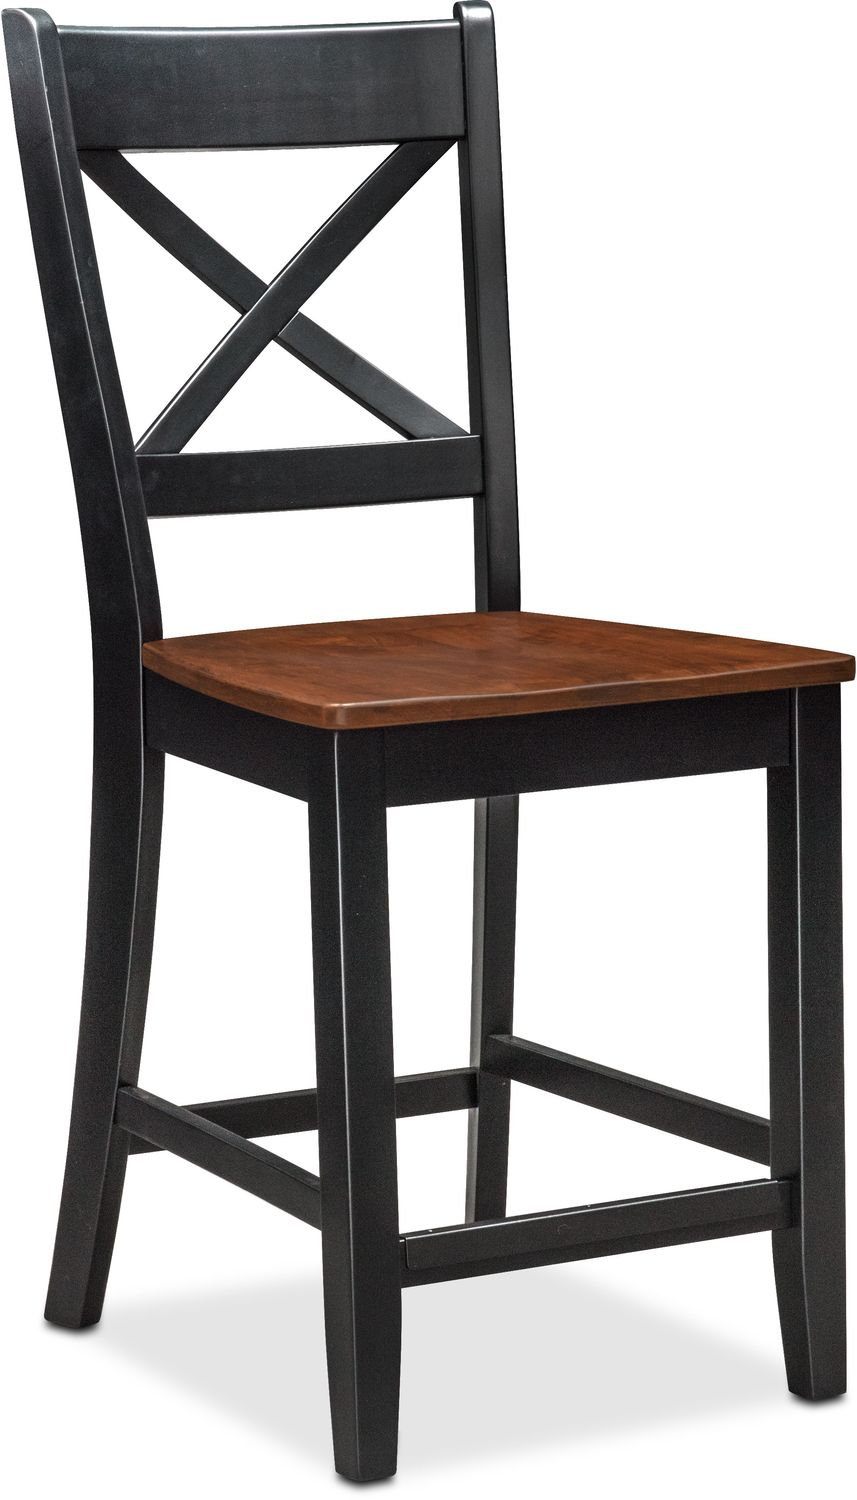 Nantucket Counter-Height Side Chair - Black and Cherry